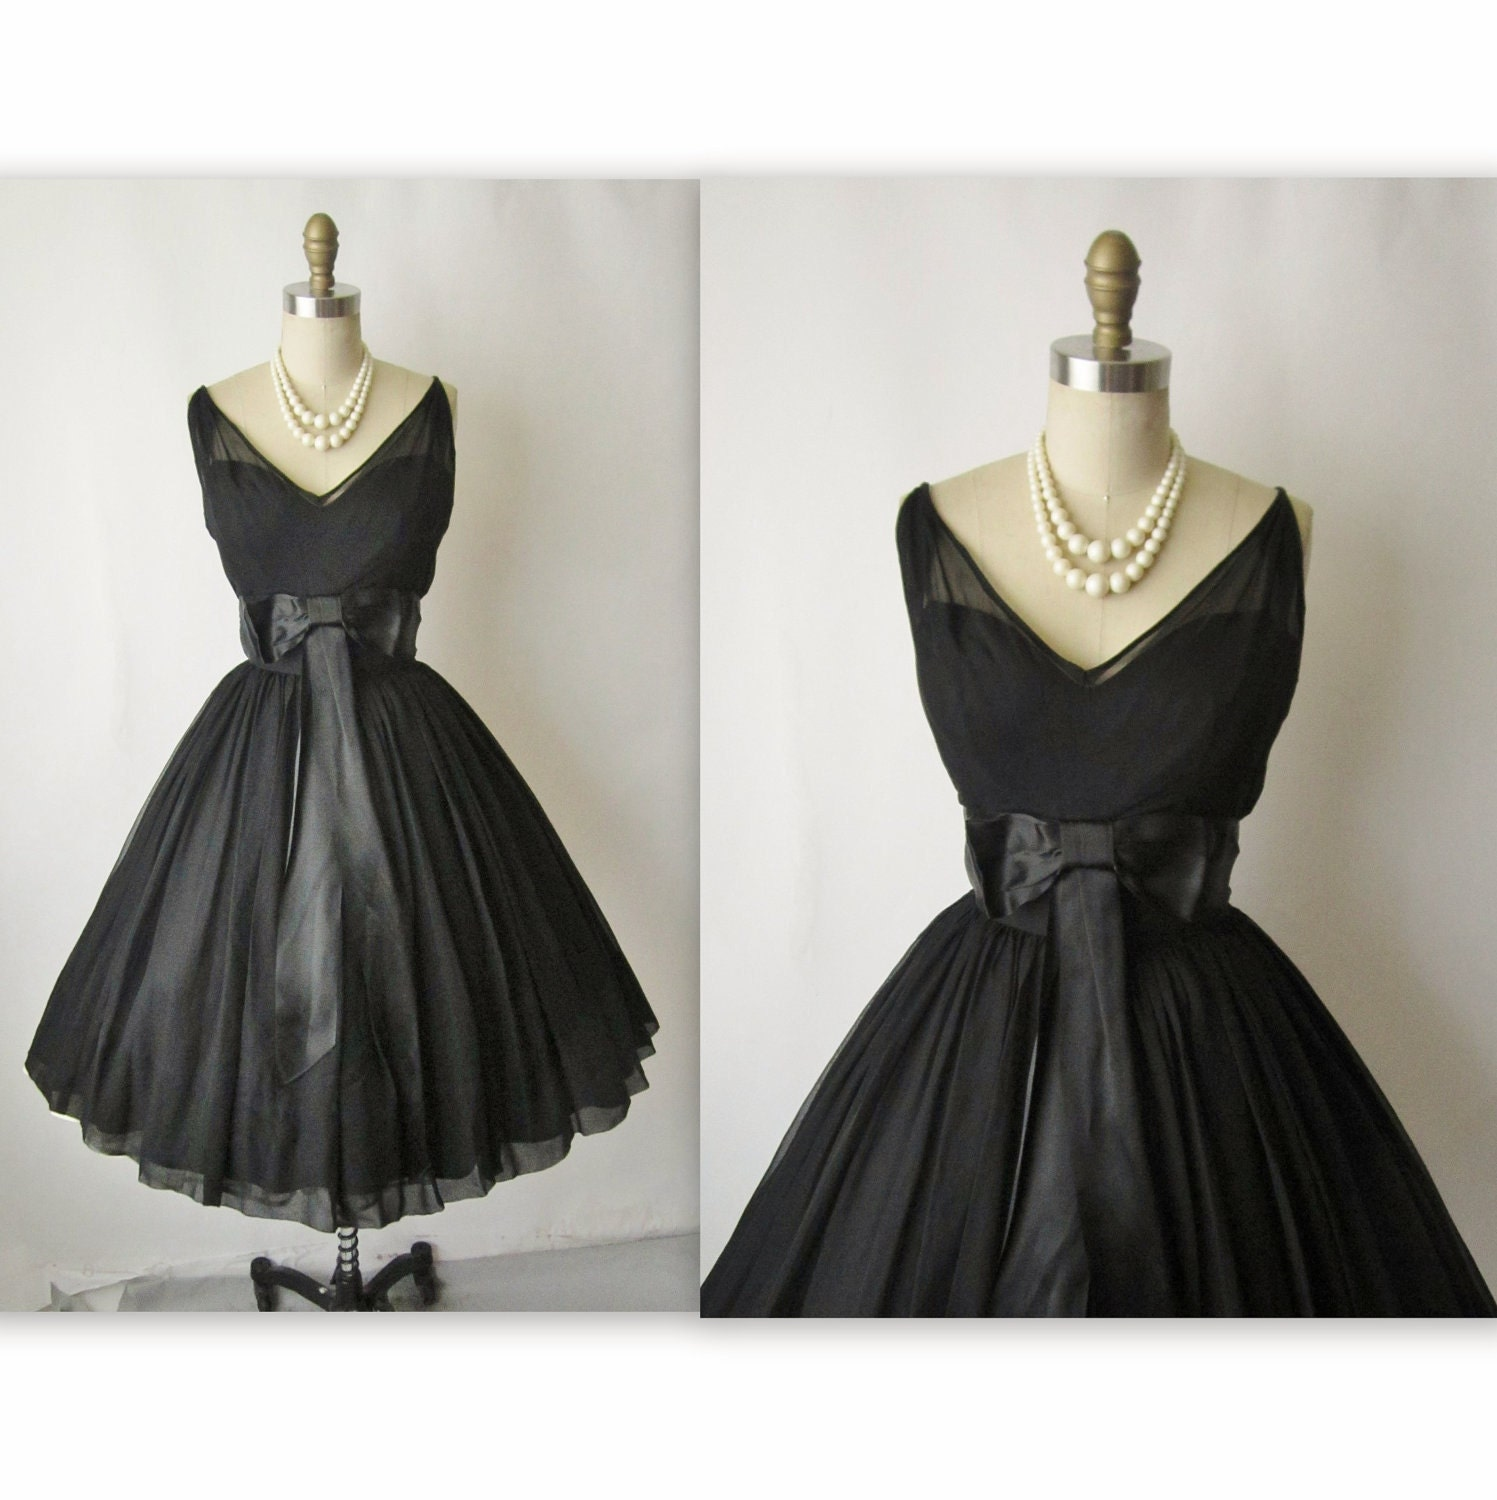 50's Cocktail Dress // Vintage 1950's Black Chiffon Full Cocktail Party Holiday Dress S M